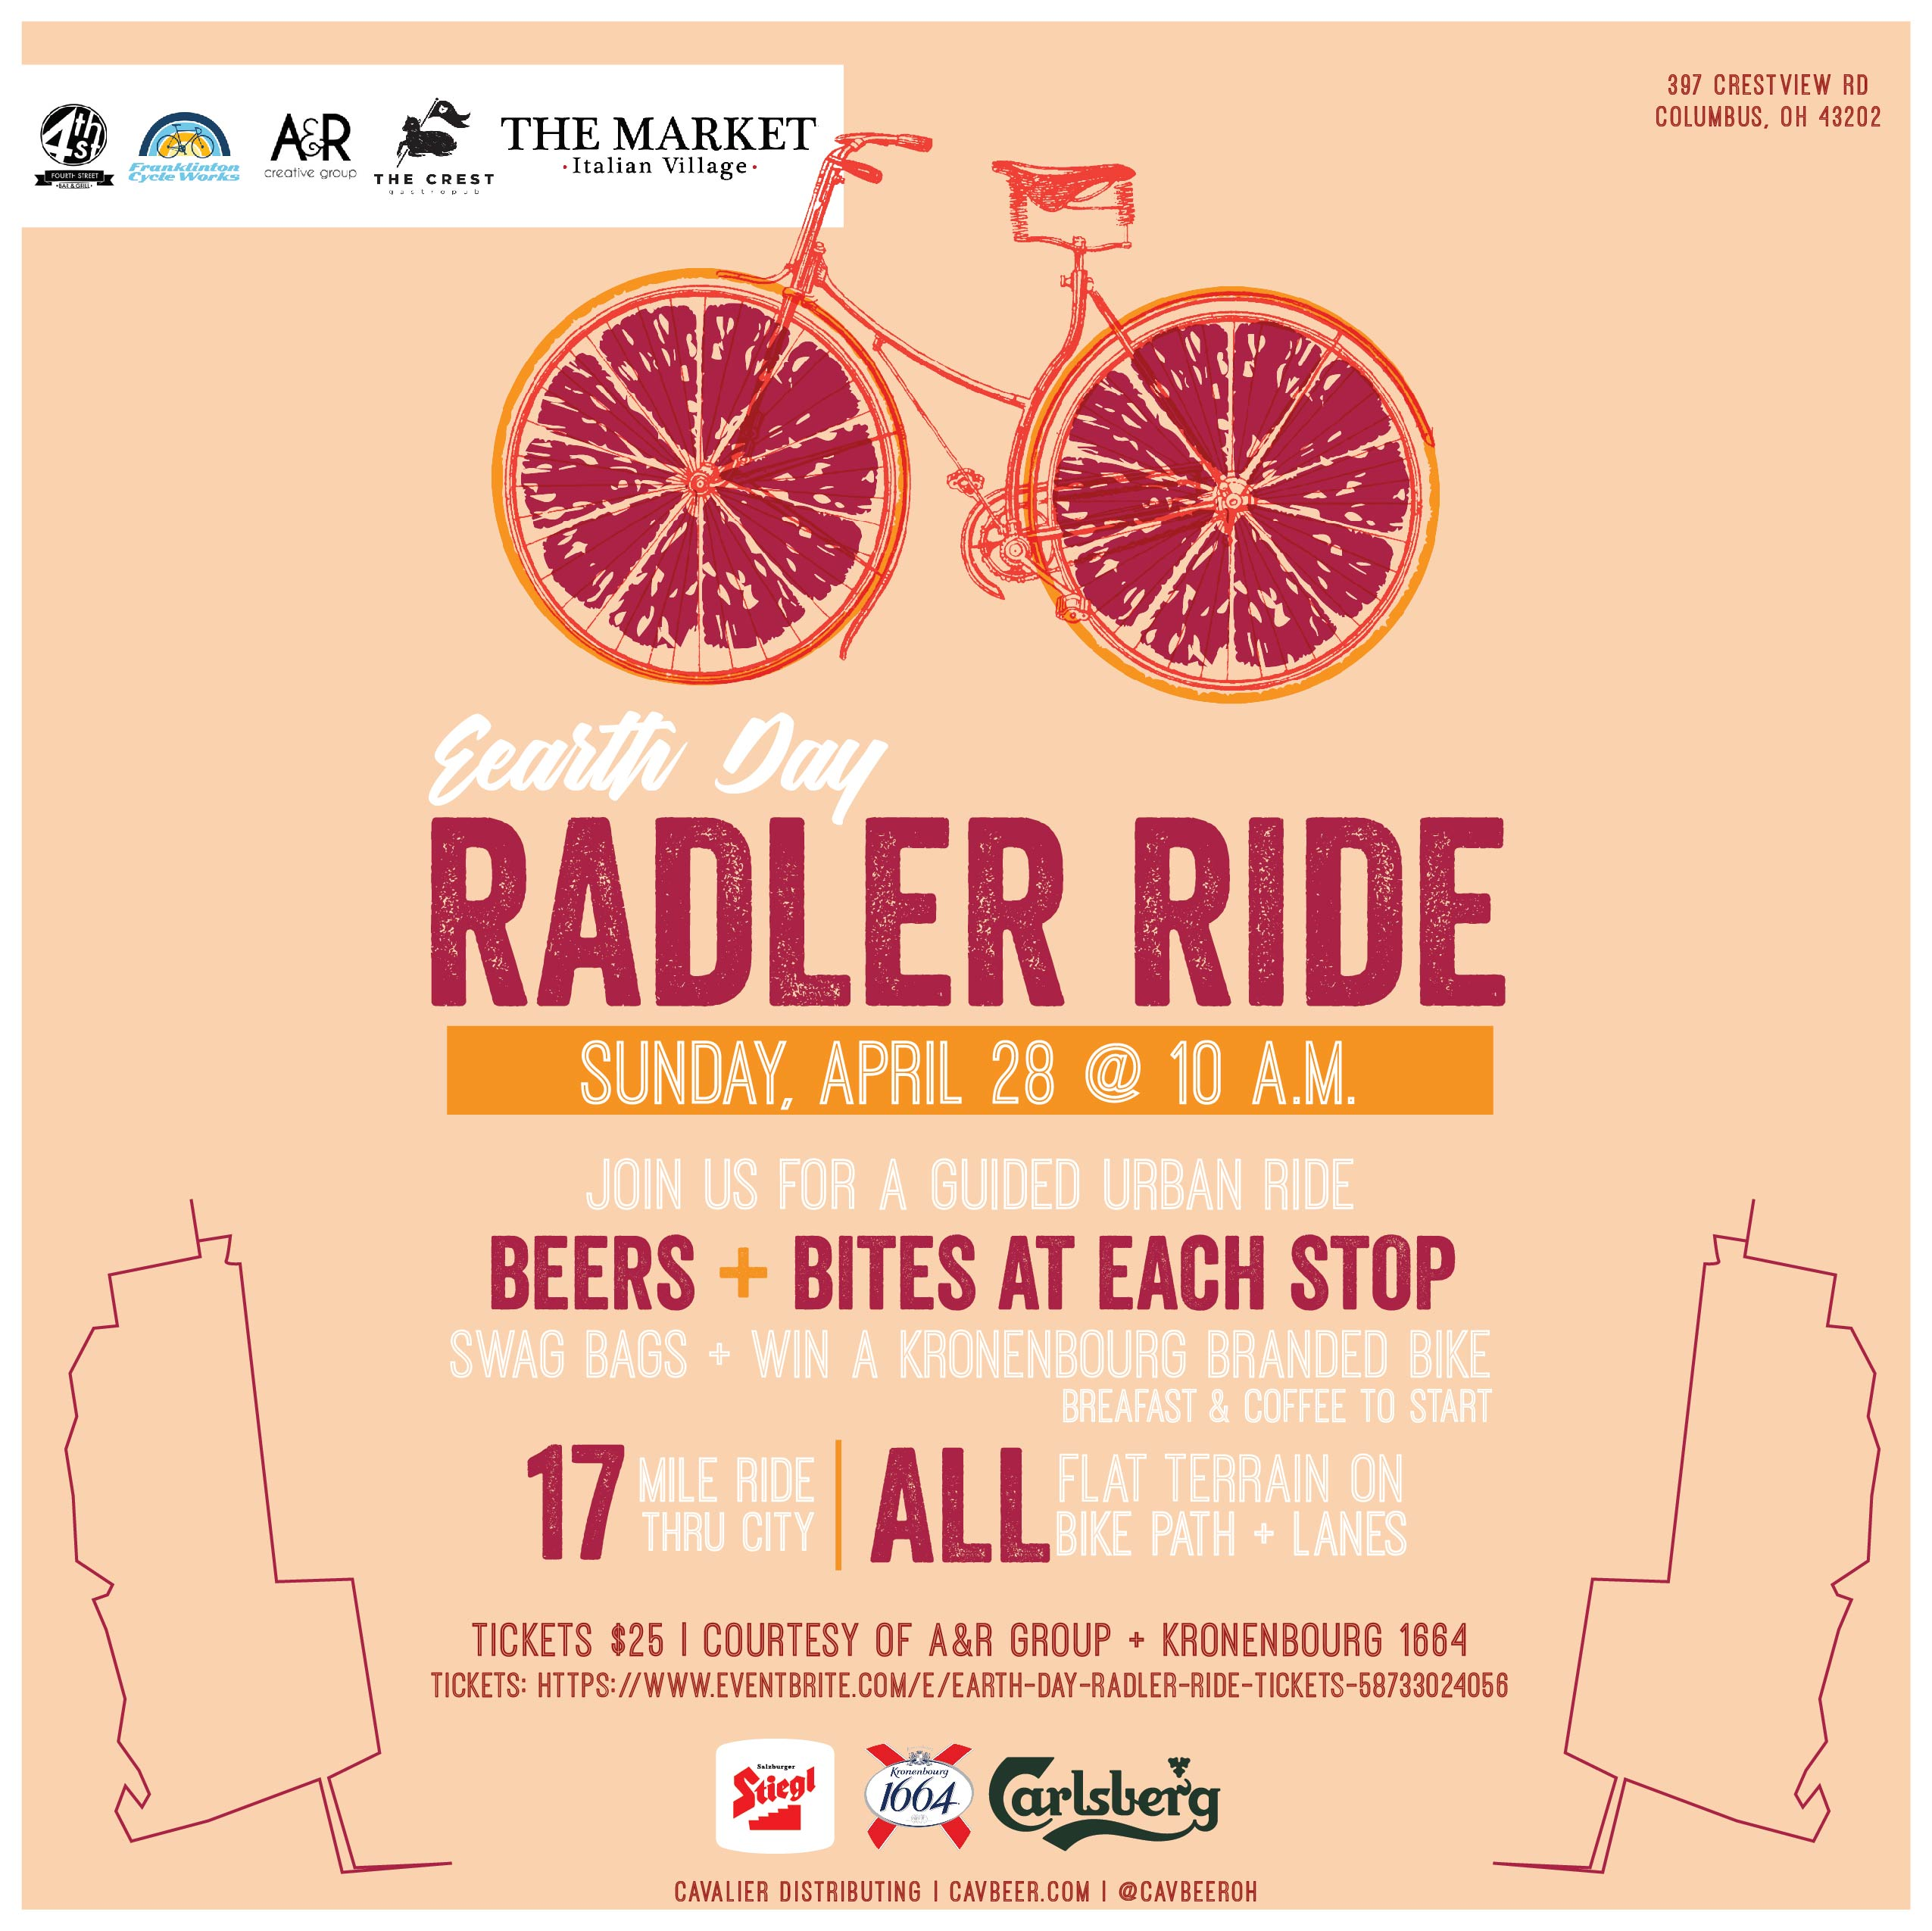 Radler Ride! @ Columbus, Ohio (See attached flyer for details)